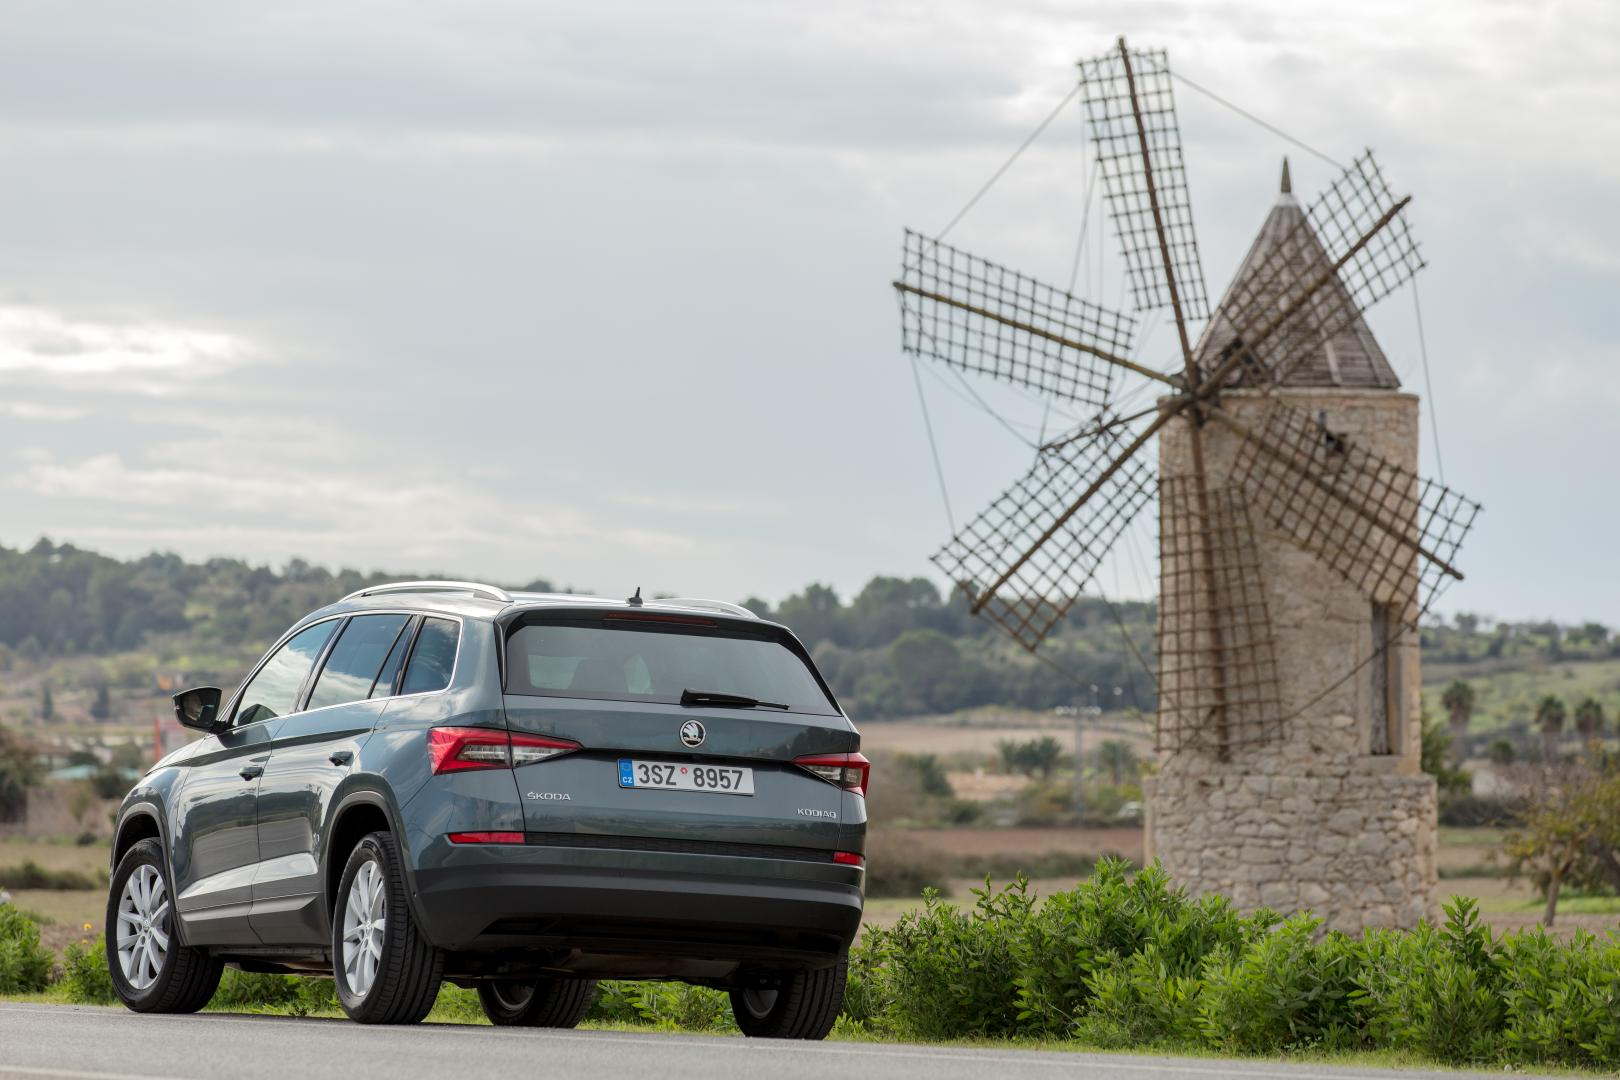 skoda-kodiaq-14-tsi-4x4-test-drives-2017